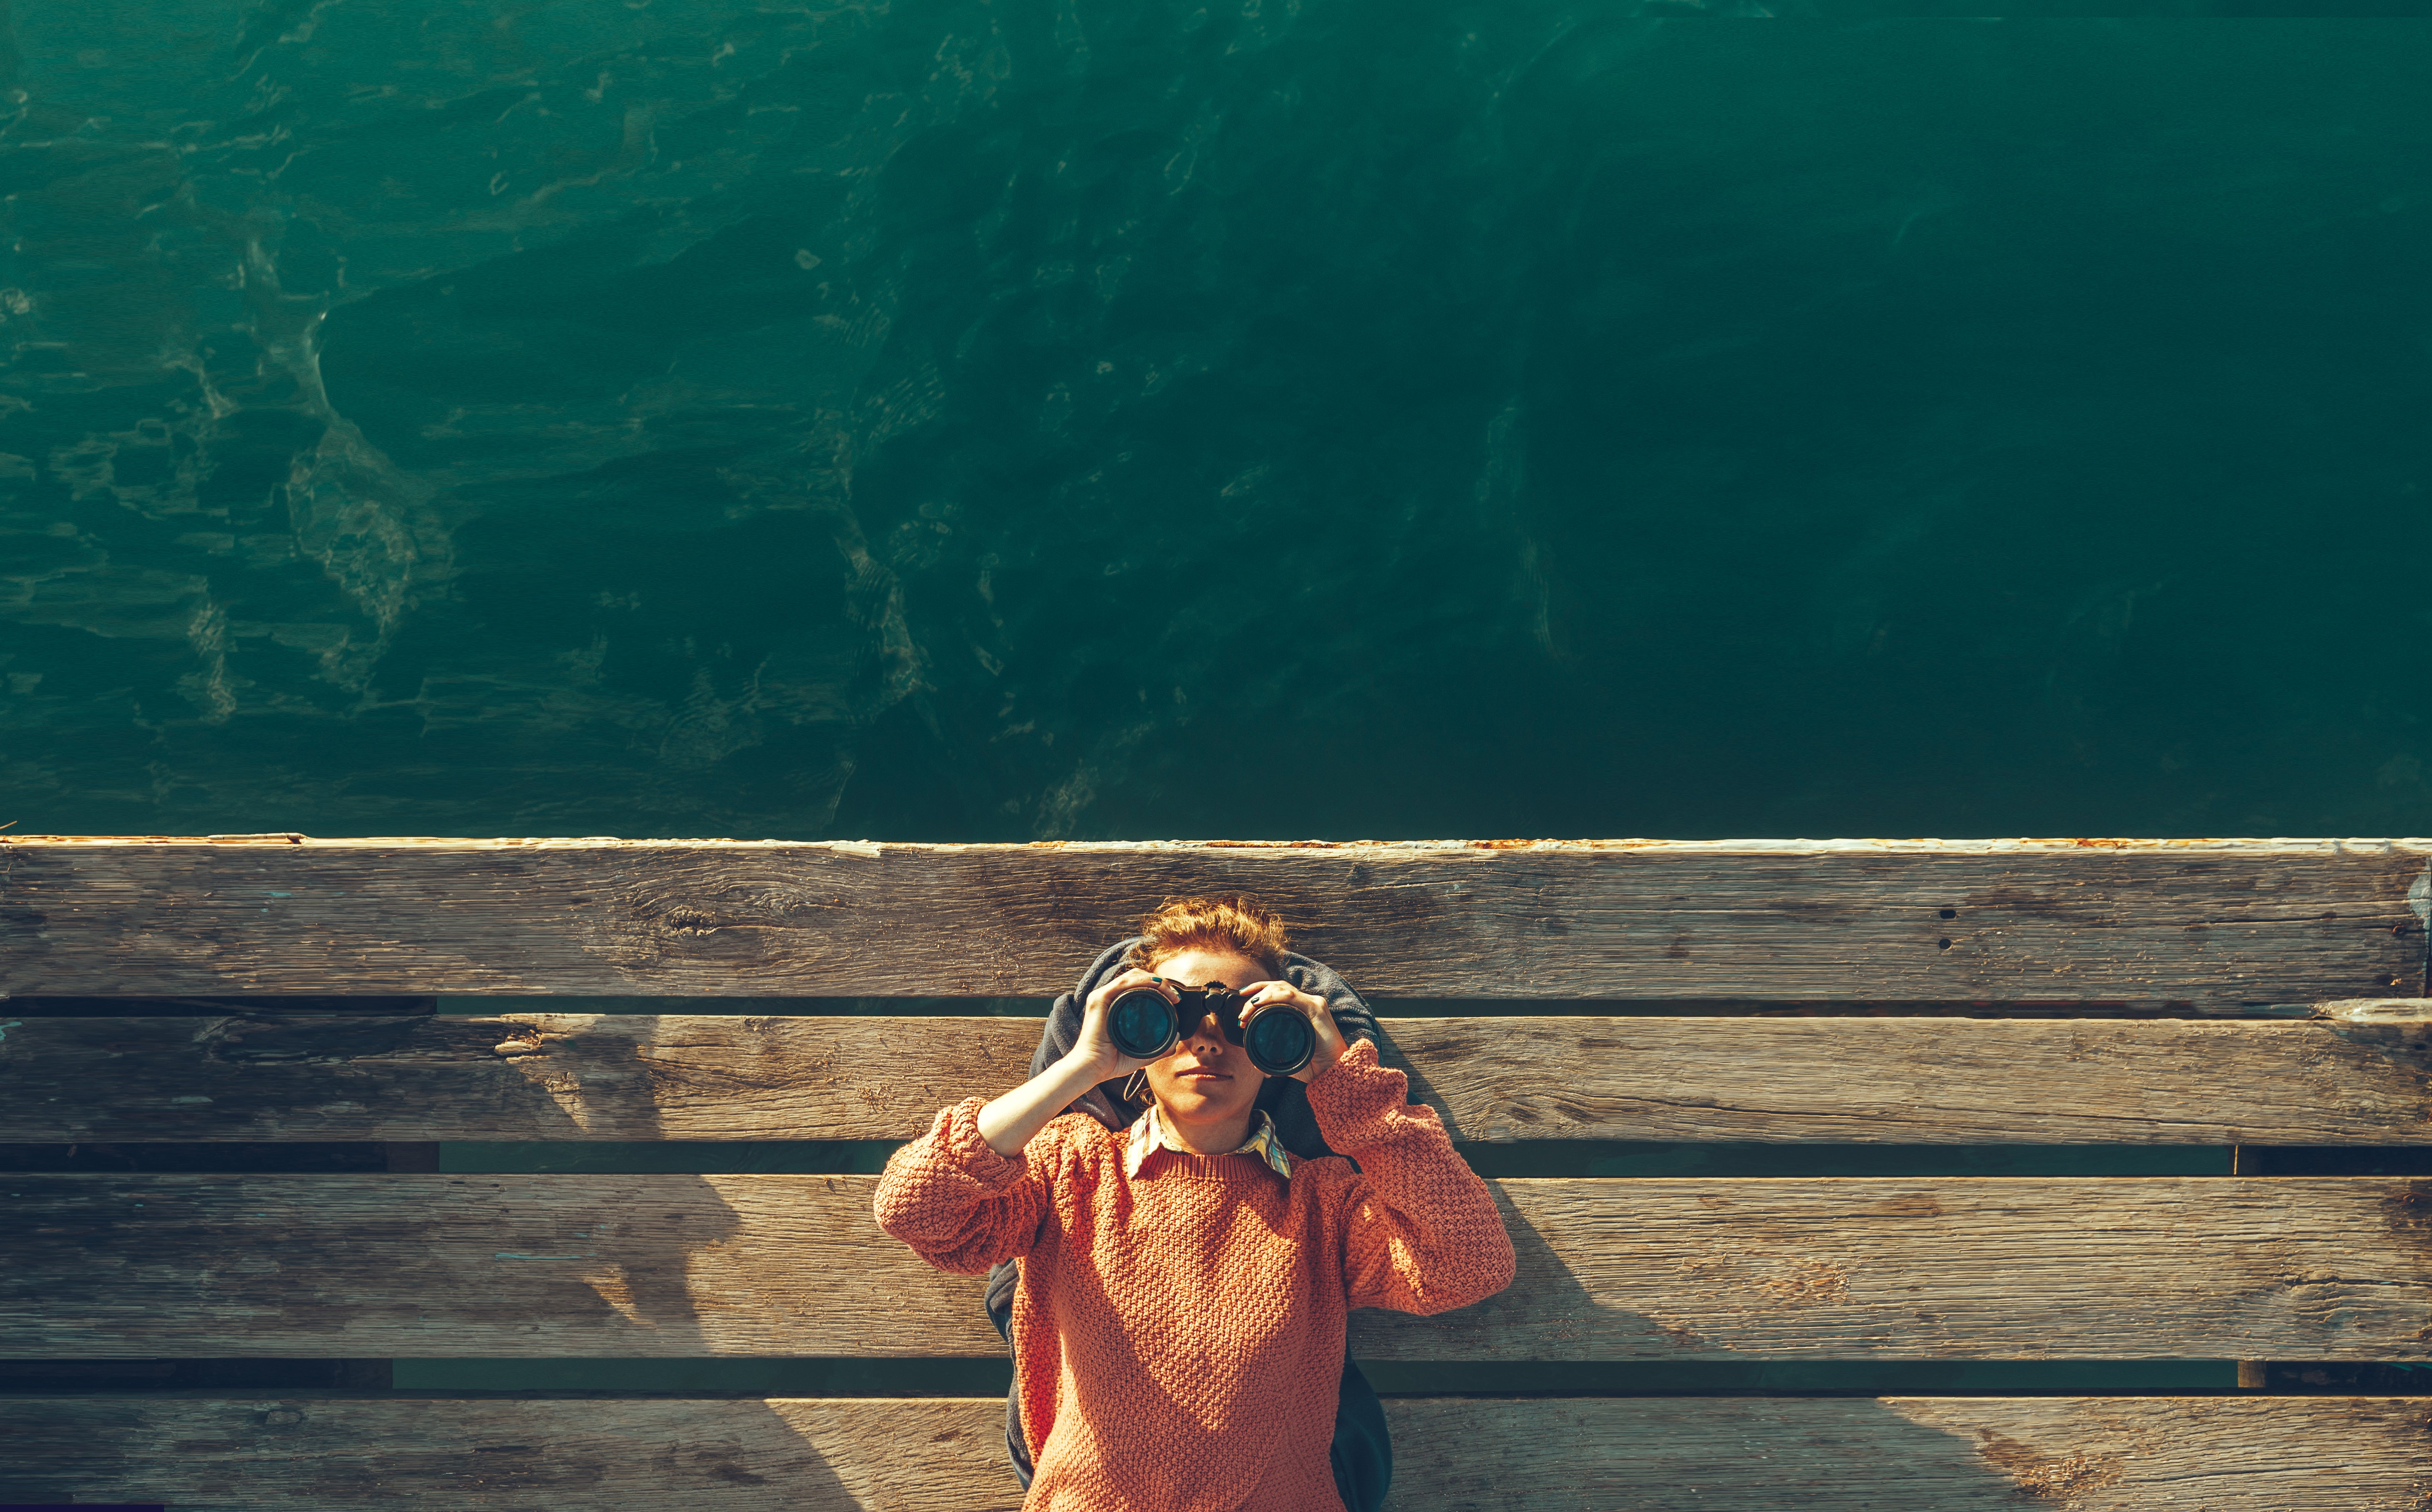 A woman with binoculars on a dock